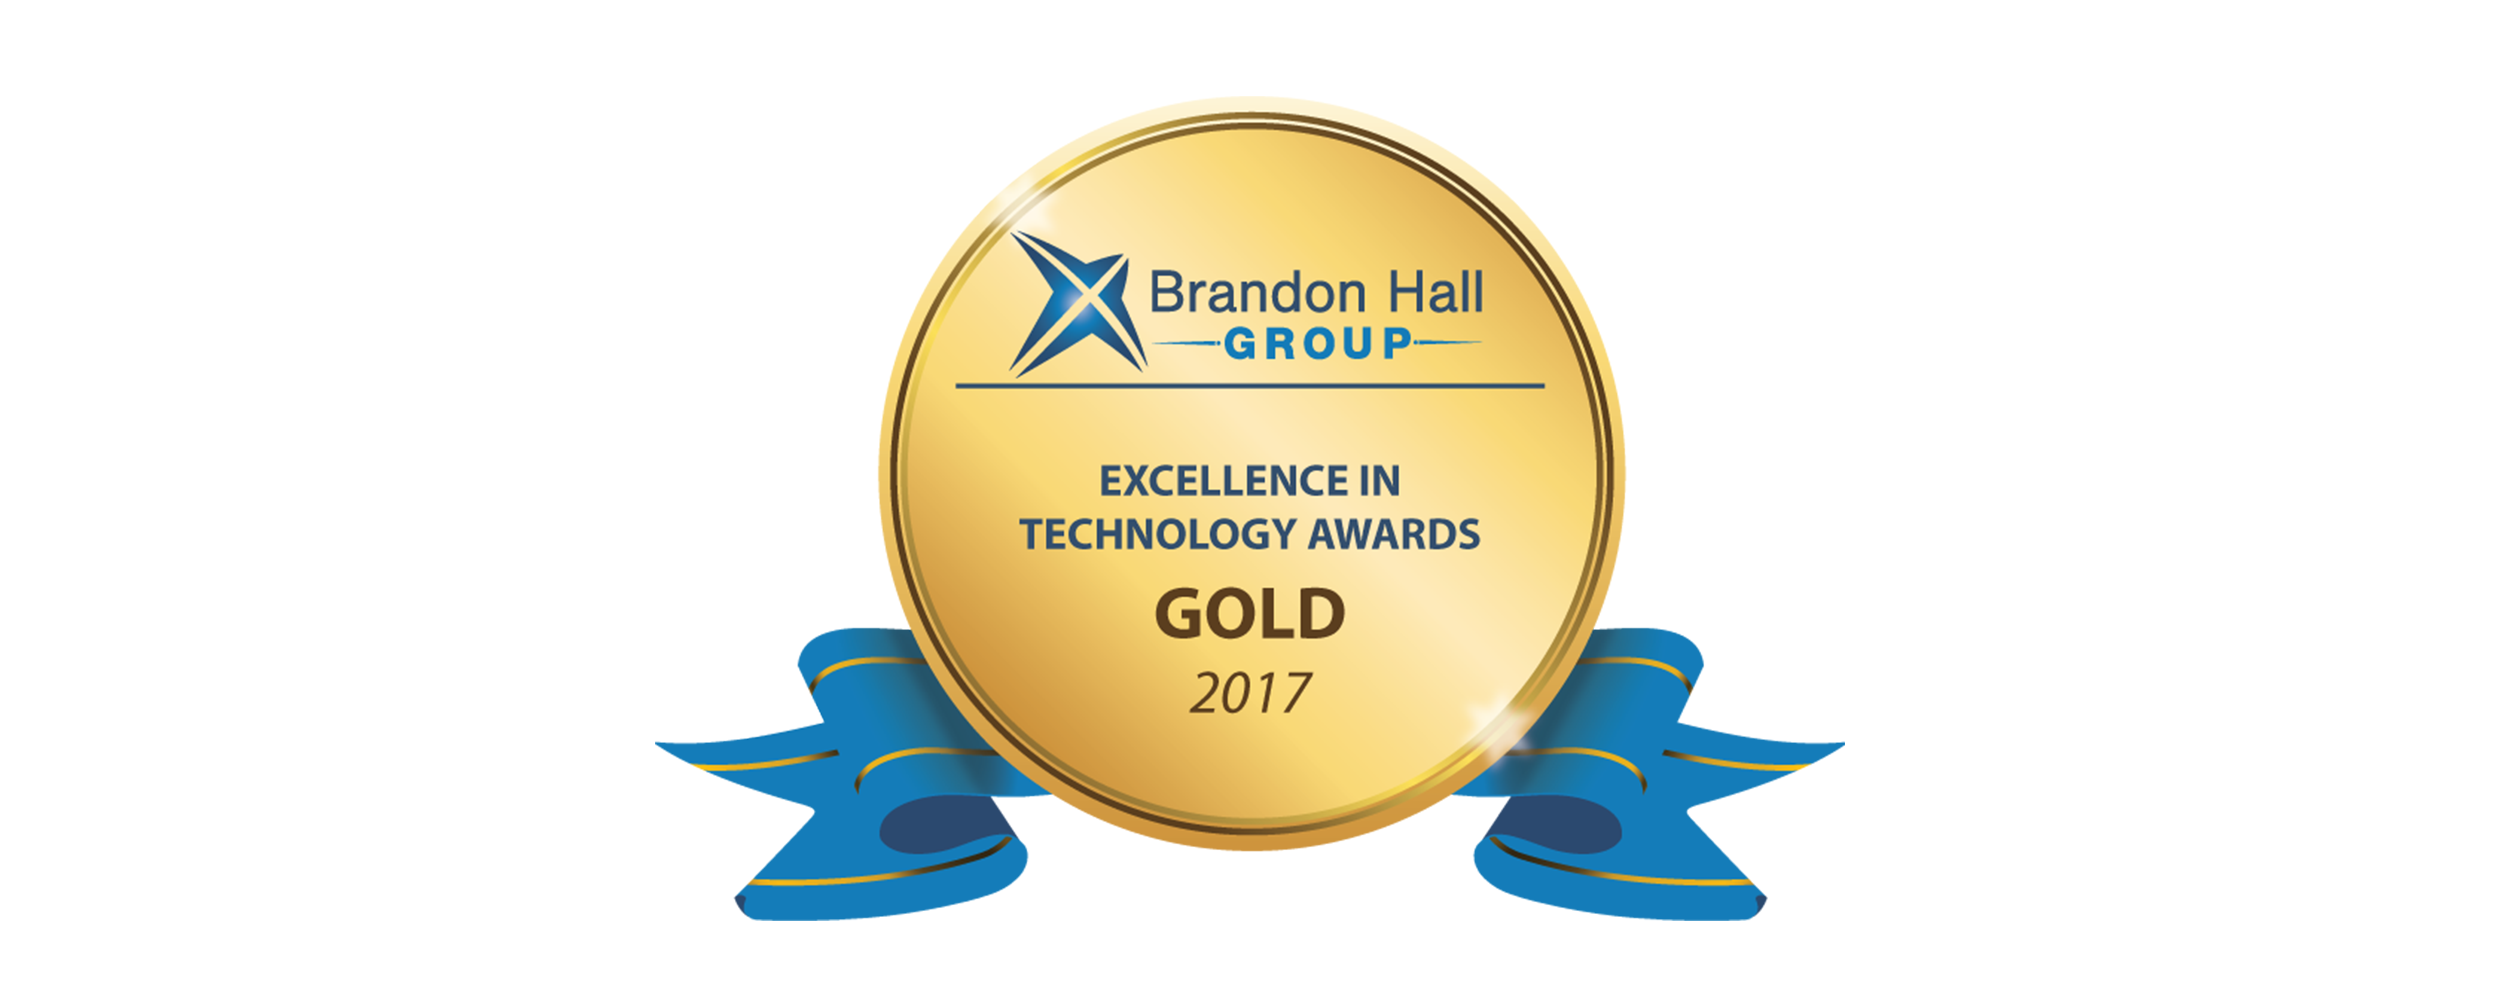 NovoEd Wins Best Self-Directed Learning Platform at 2017 Brandon Hall Gold